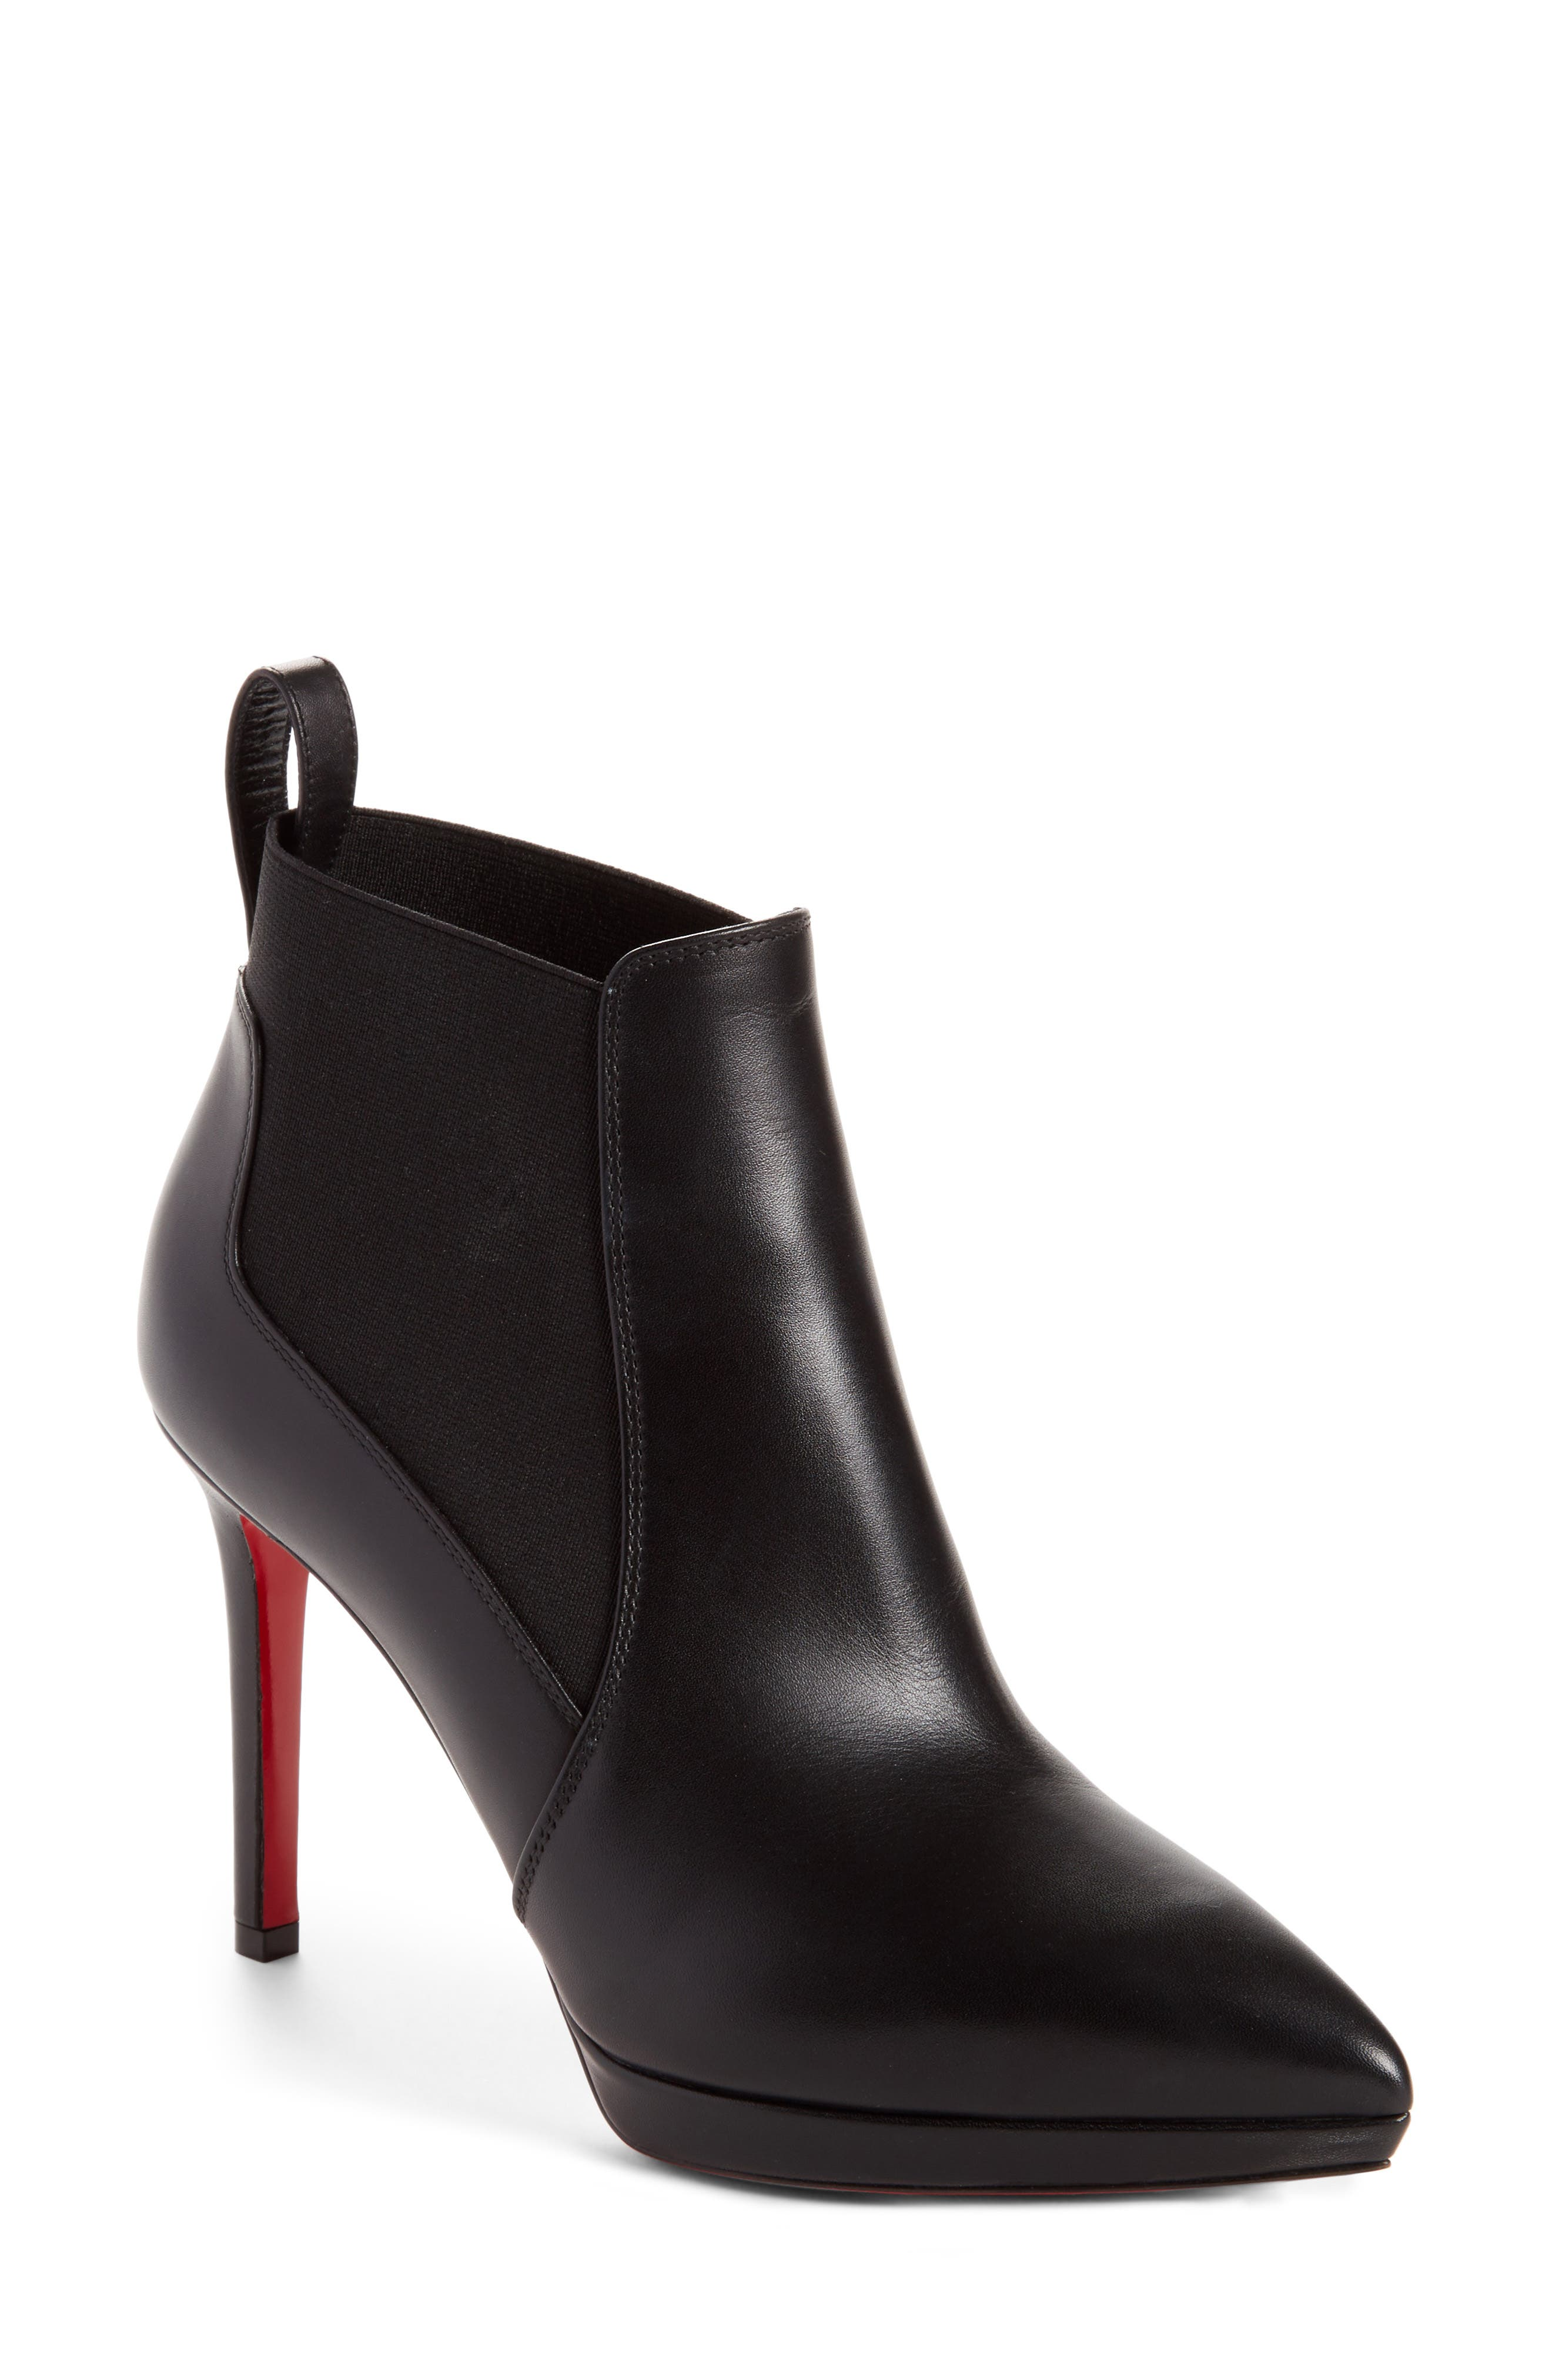 CHRISTIAN LOUBOUTIN Crochinetta Bootie, Main, color, BLACK